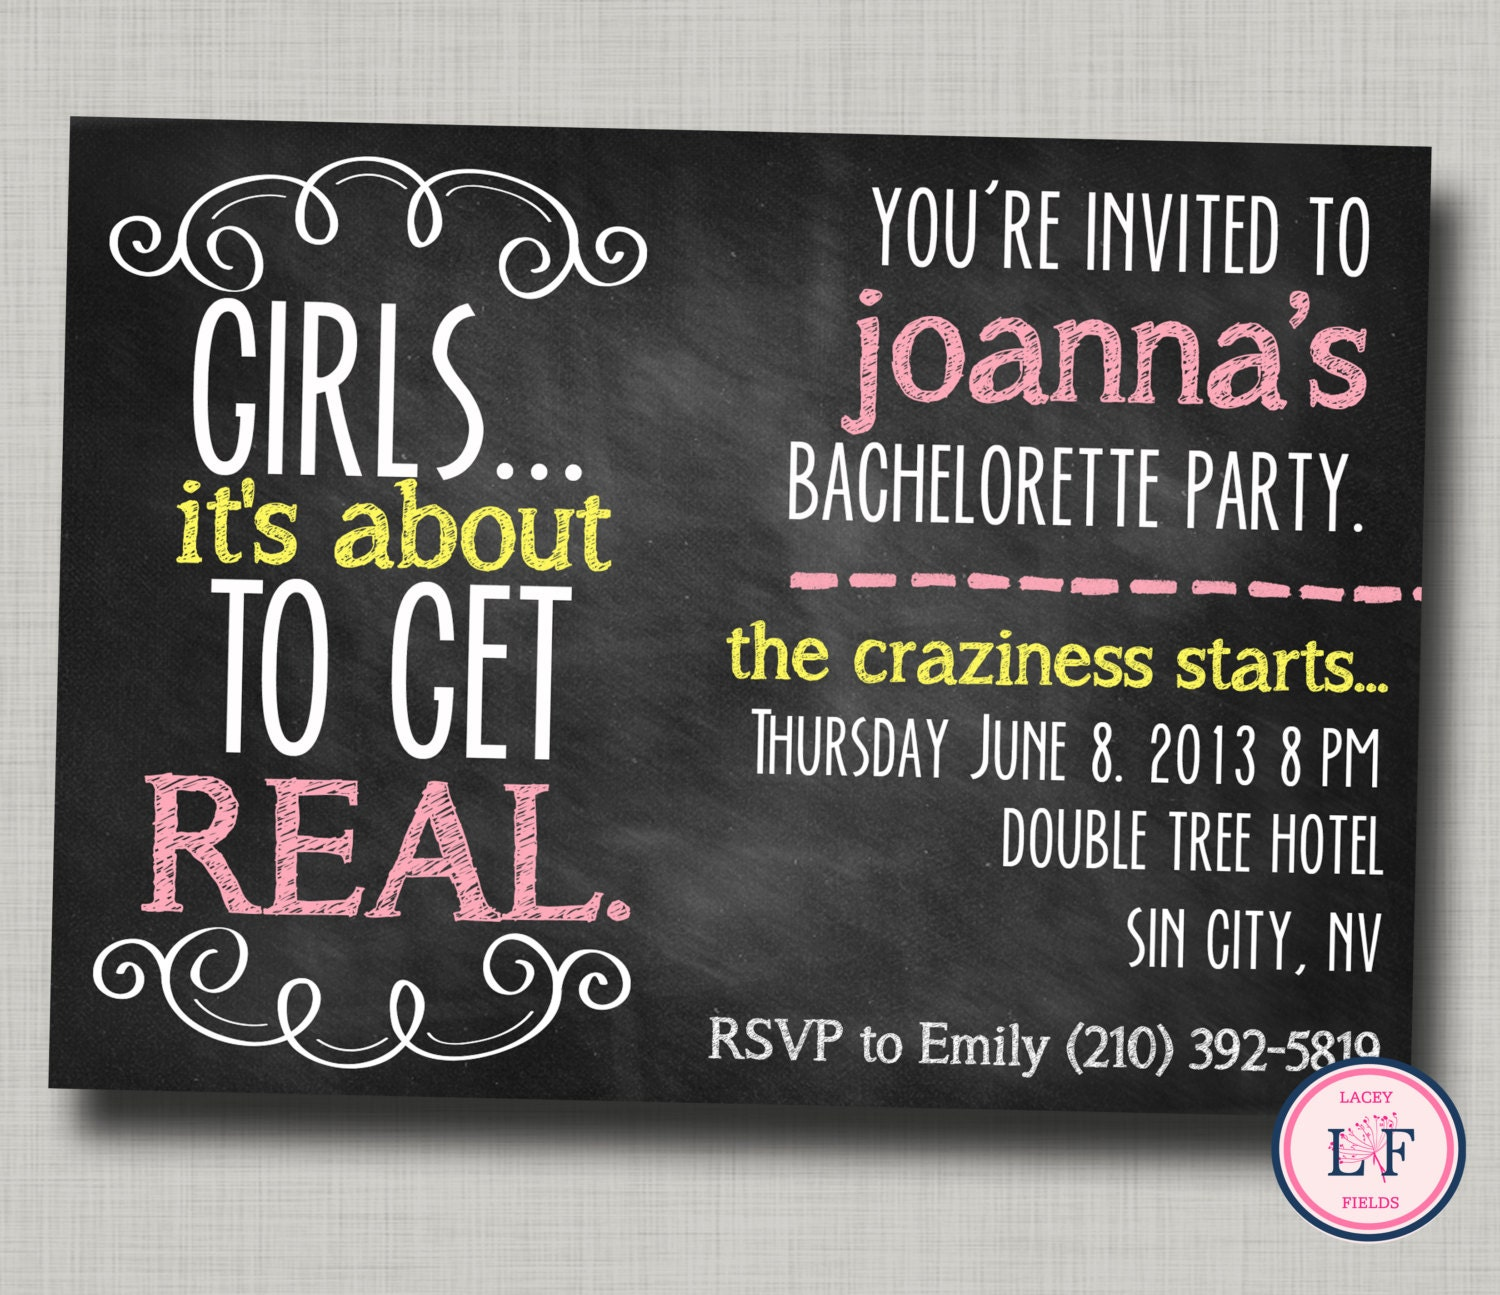 Printable Bachelorette Party Invitations could be nice ideas for your invitation template